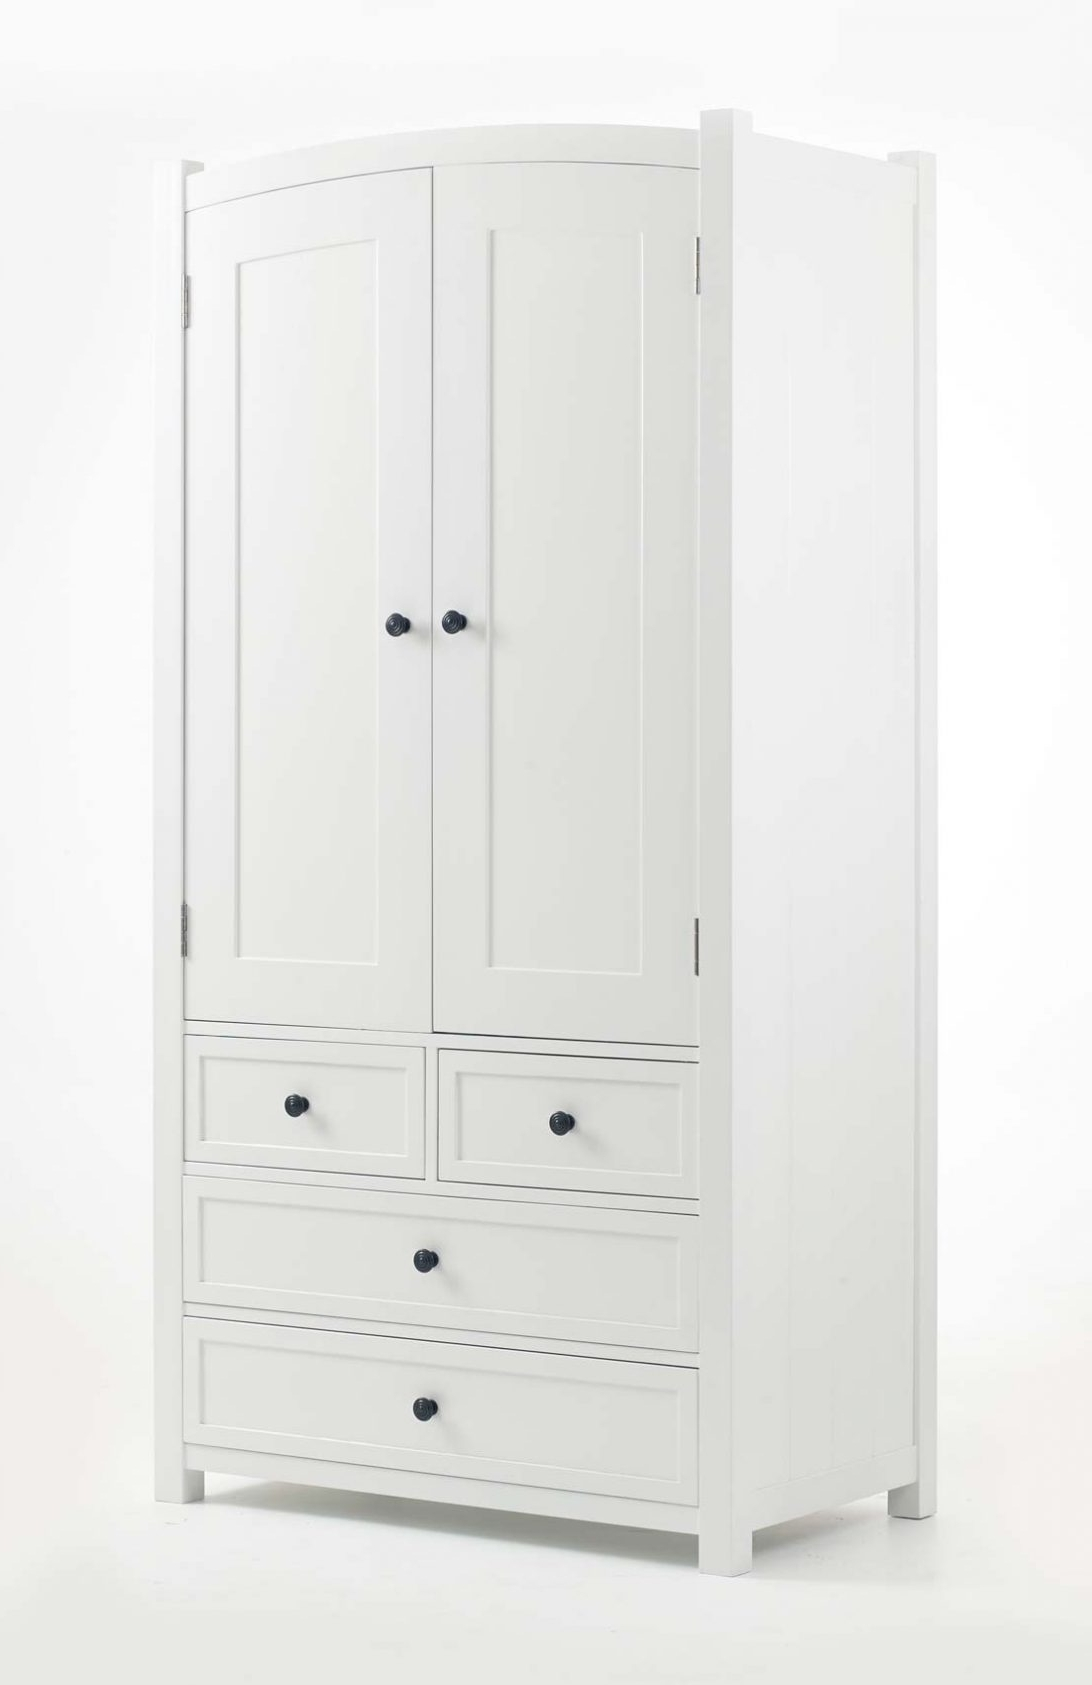 Most Popular White Wardrobe With Drawers And Shelves Sliding Door Wood With Regard To White Double Wardrobes With Drawers (View 12 of 15)